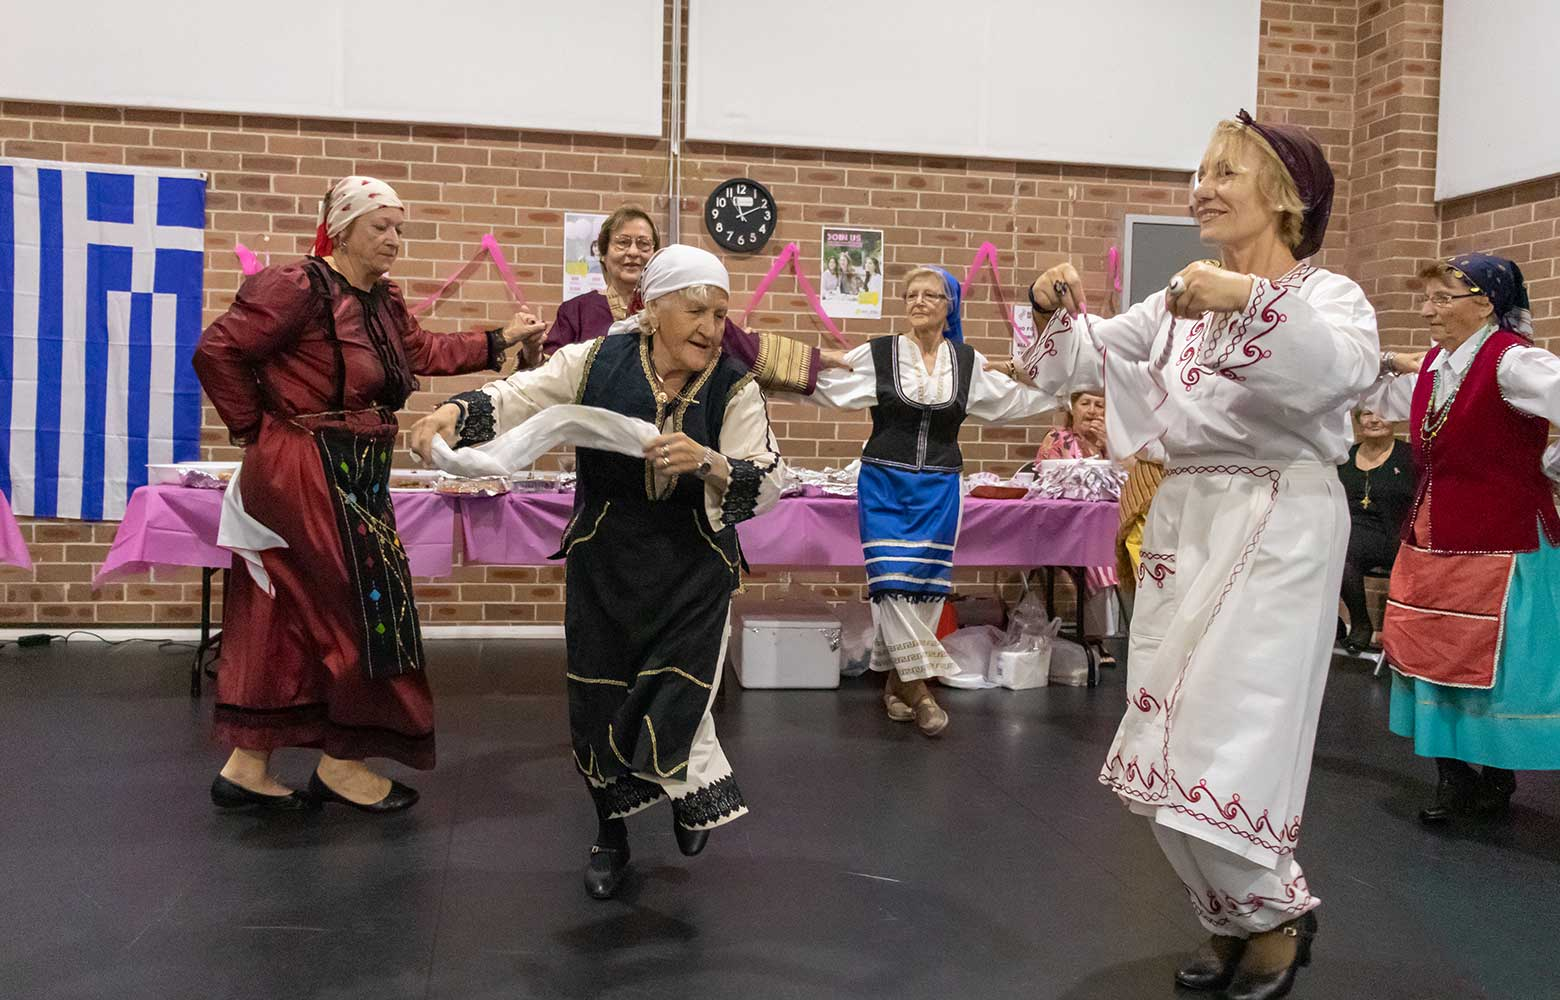 1994 - Women, in traditional Greek costume, dancing at a Bankstown Greek Group event